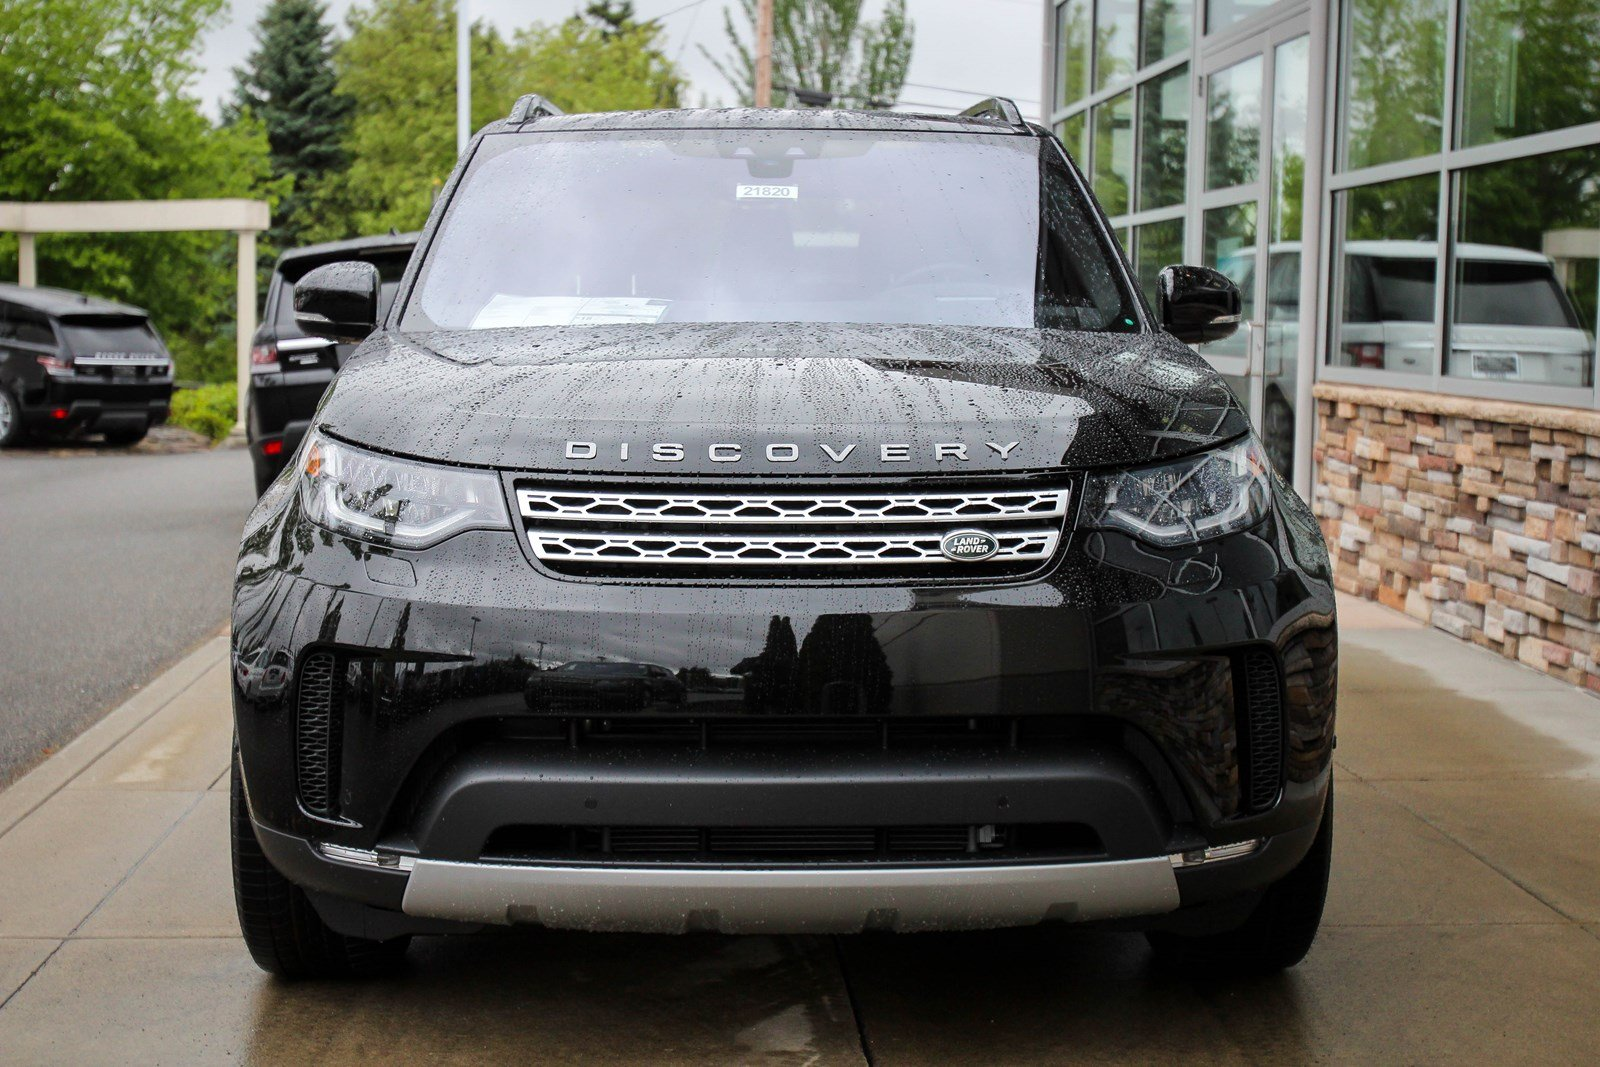 Land rover discovery hse luxury 3.0 màu đen